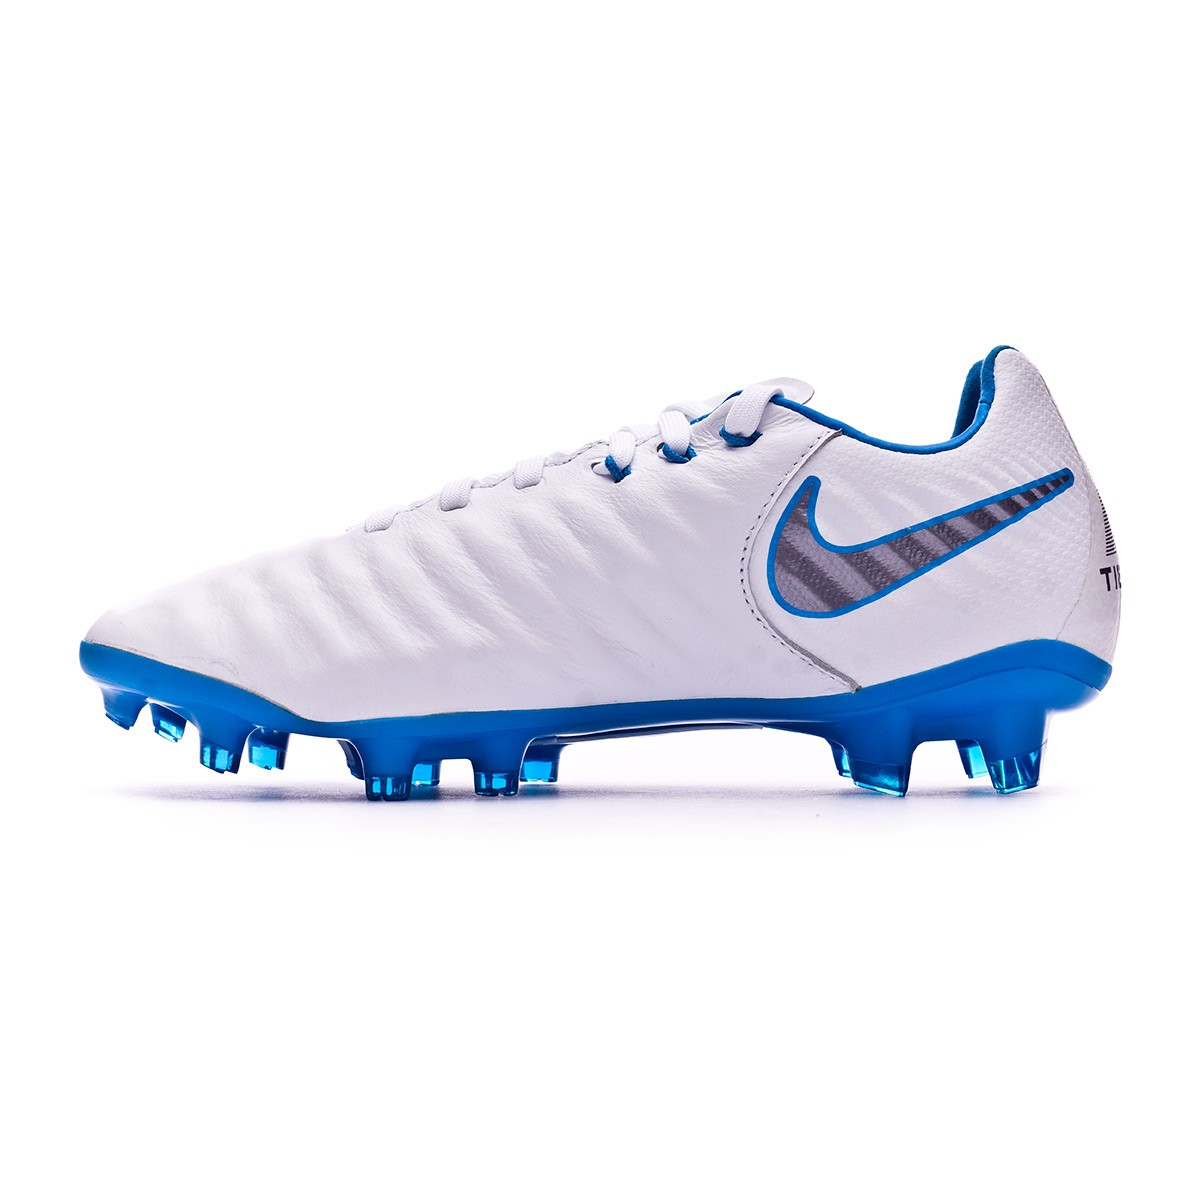 ... Bota Tiempo Legend VII Elite FG Niño White-Metallic cool grey-Blue hero.  CATEGORY aef1361548436